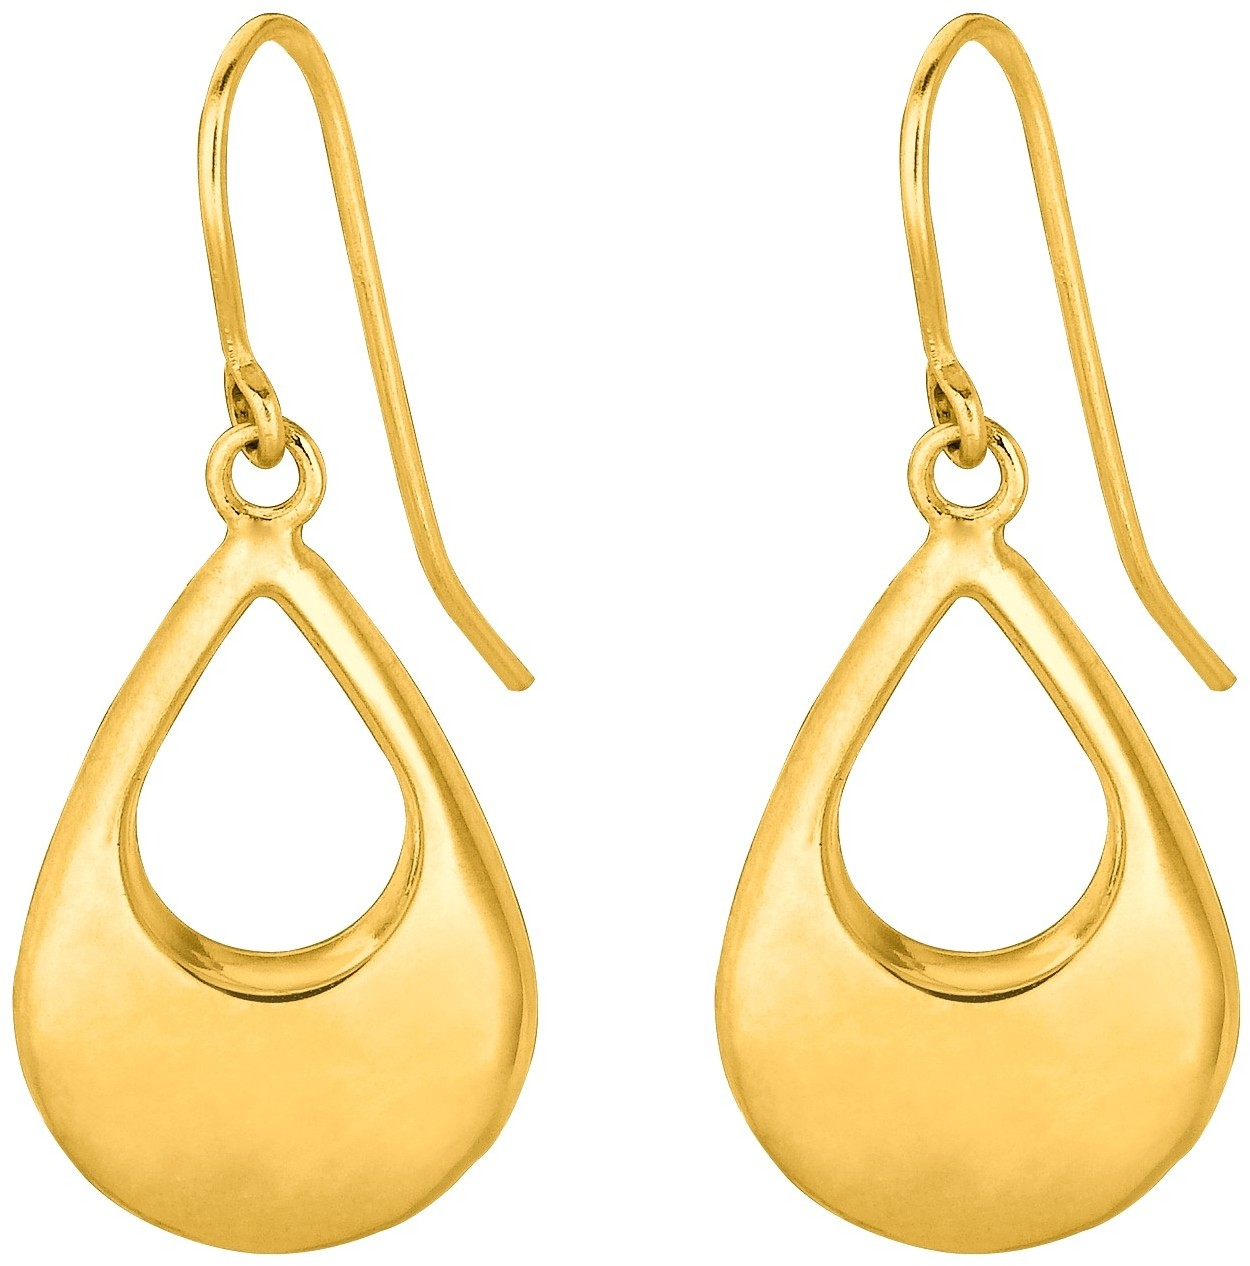 14K Yellow Gold Shiny Graduated Open Teardrop Earrings